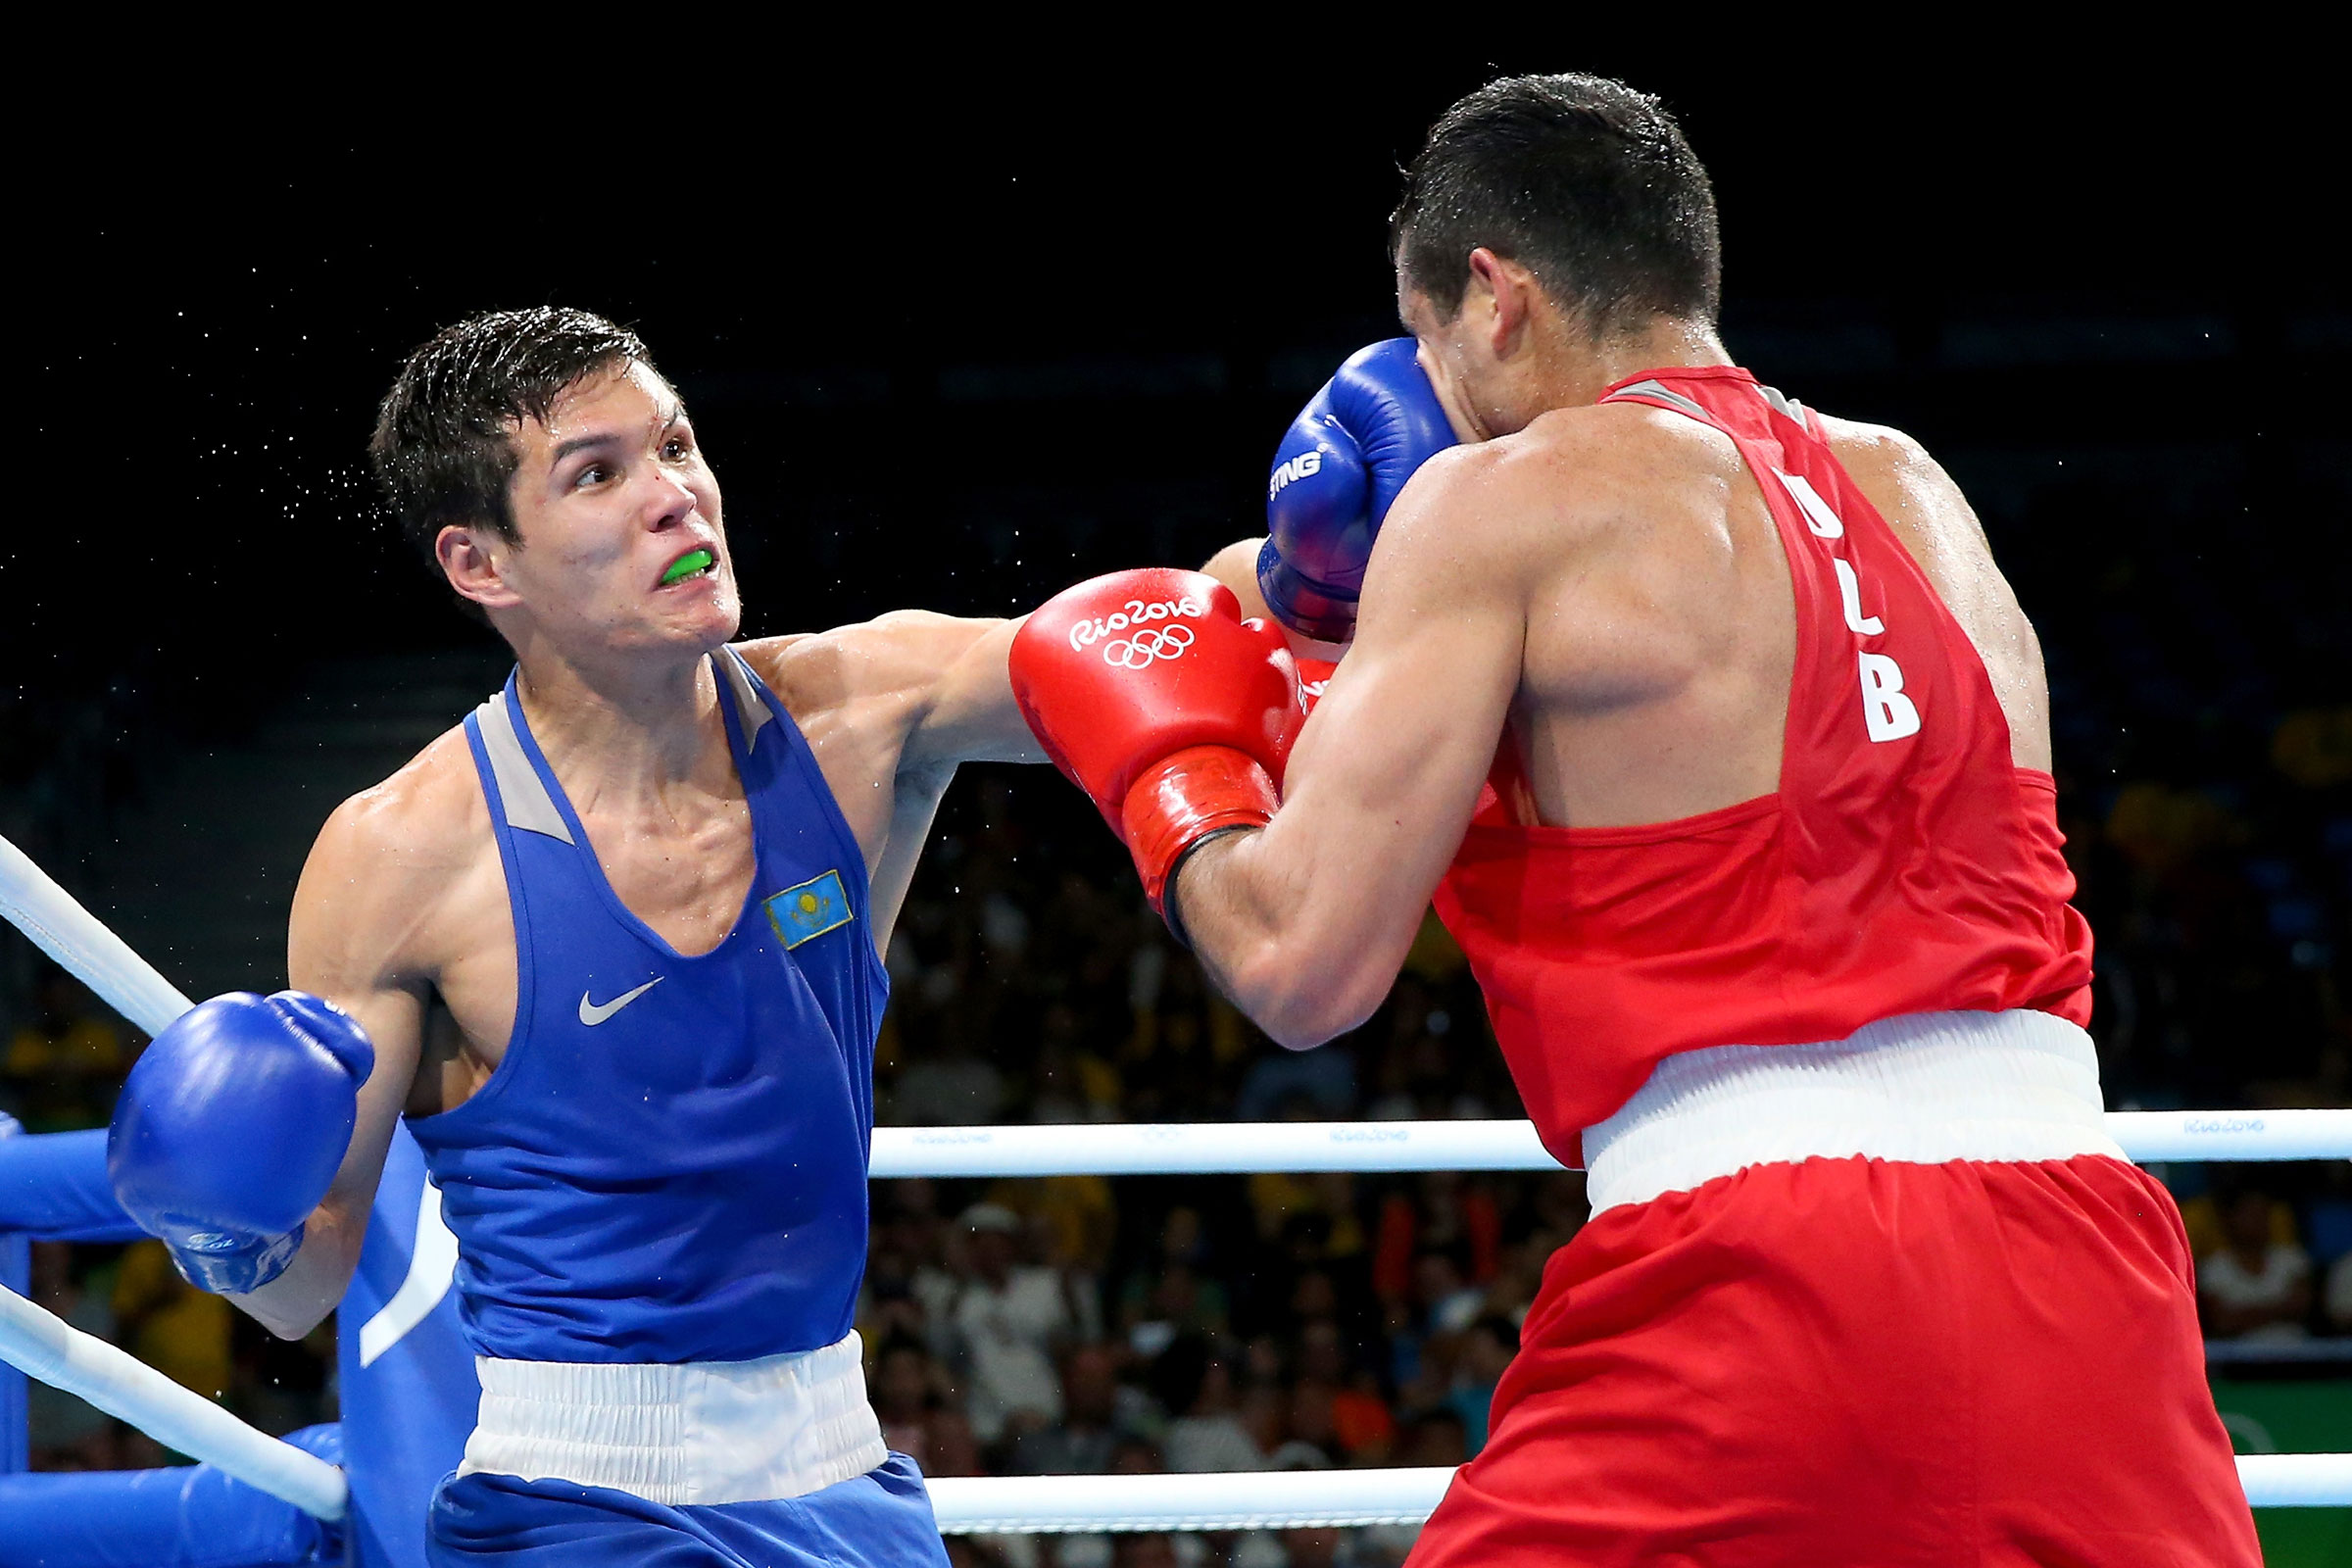 Boxing - 69kg Welter weight Men